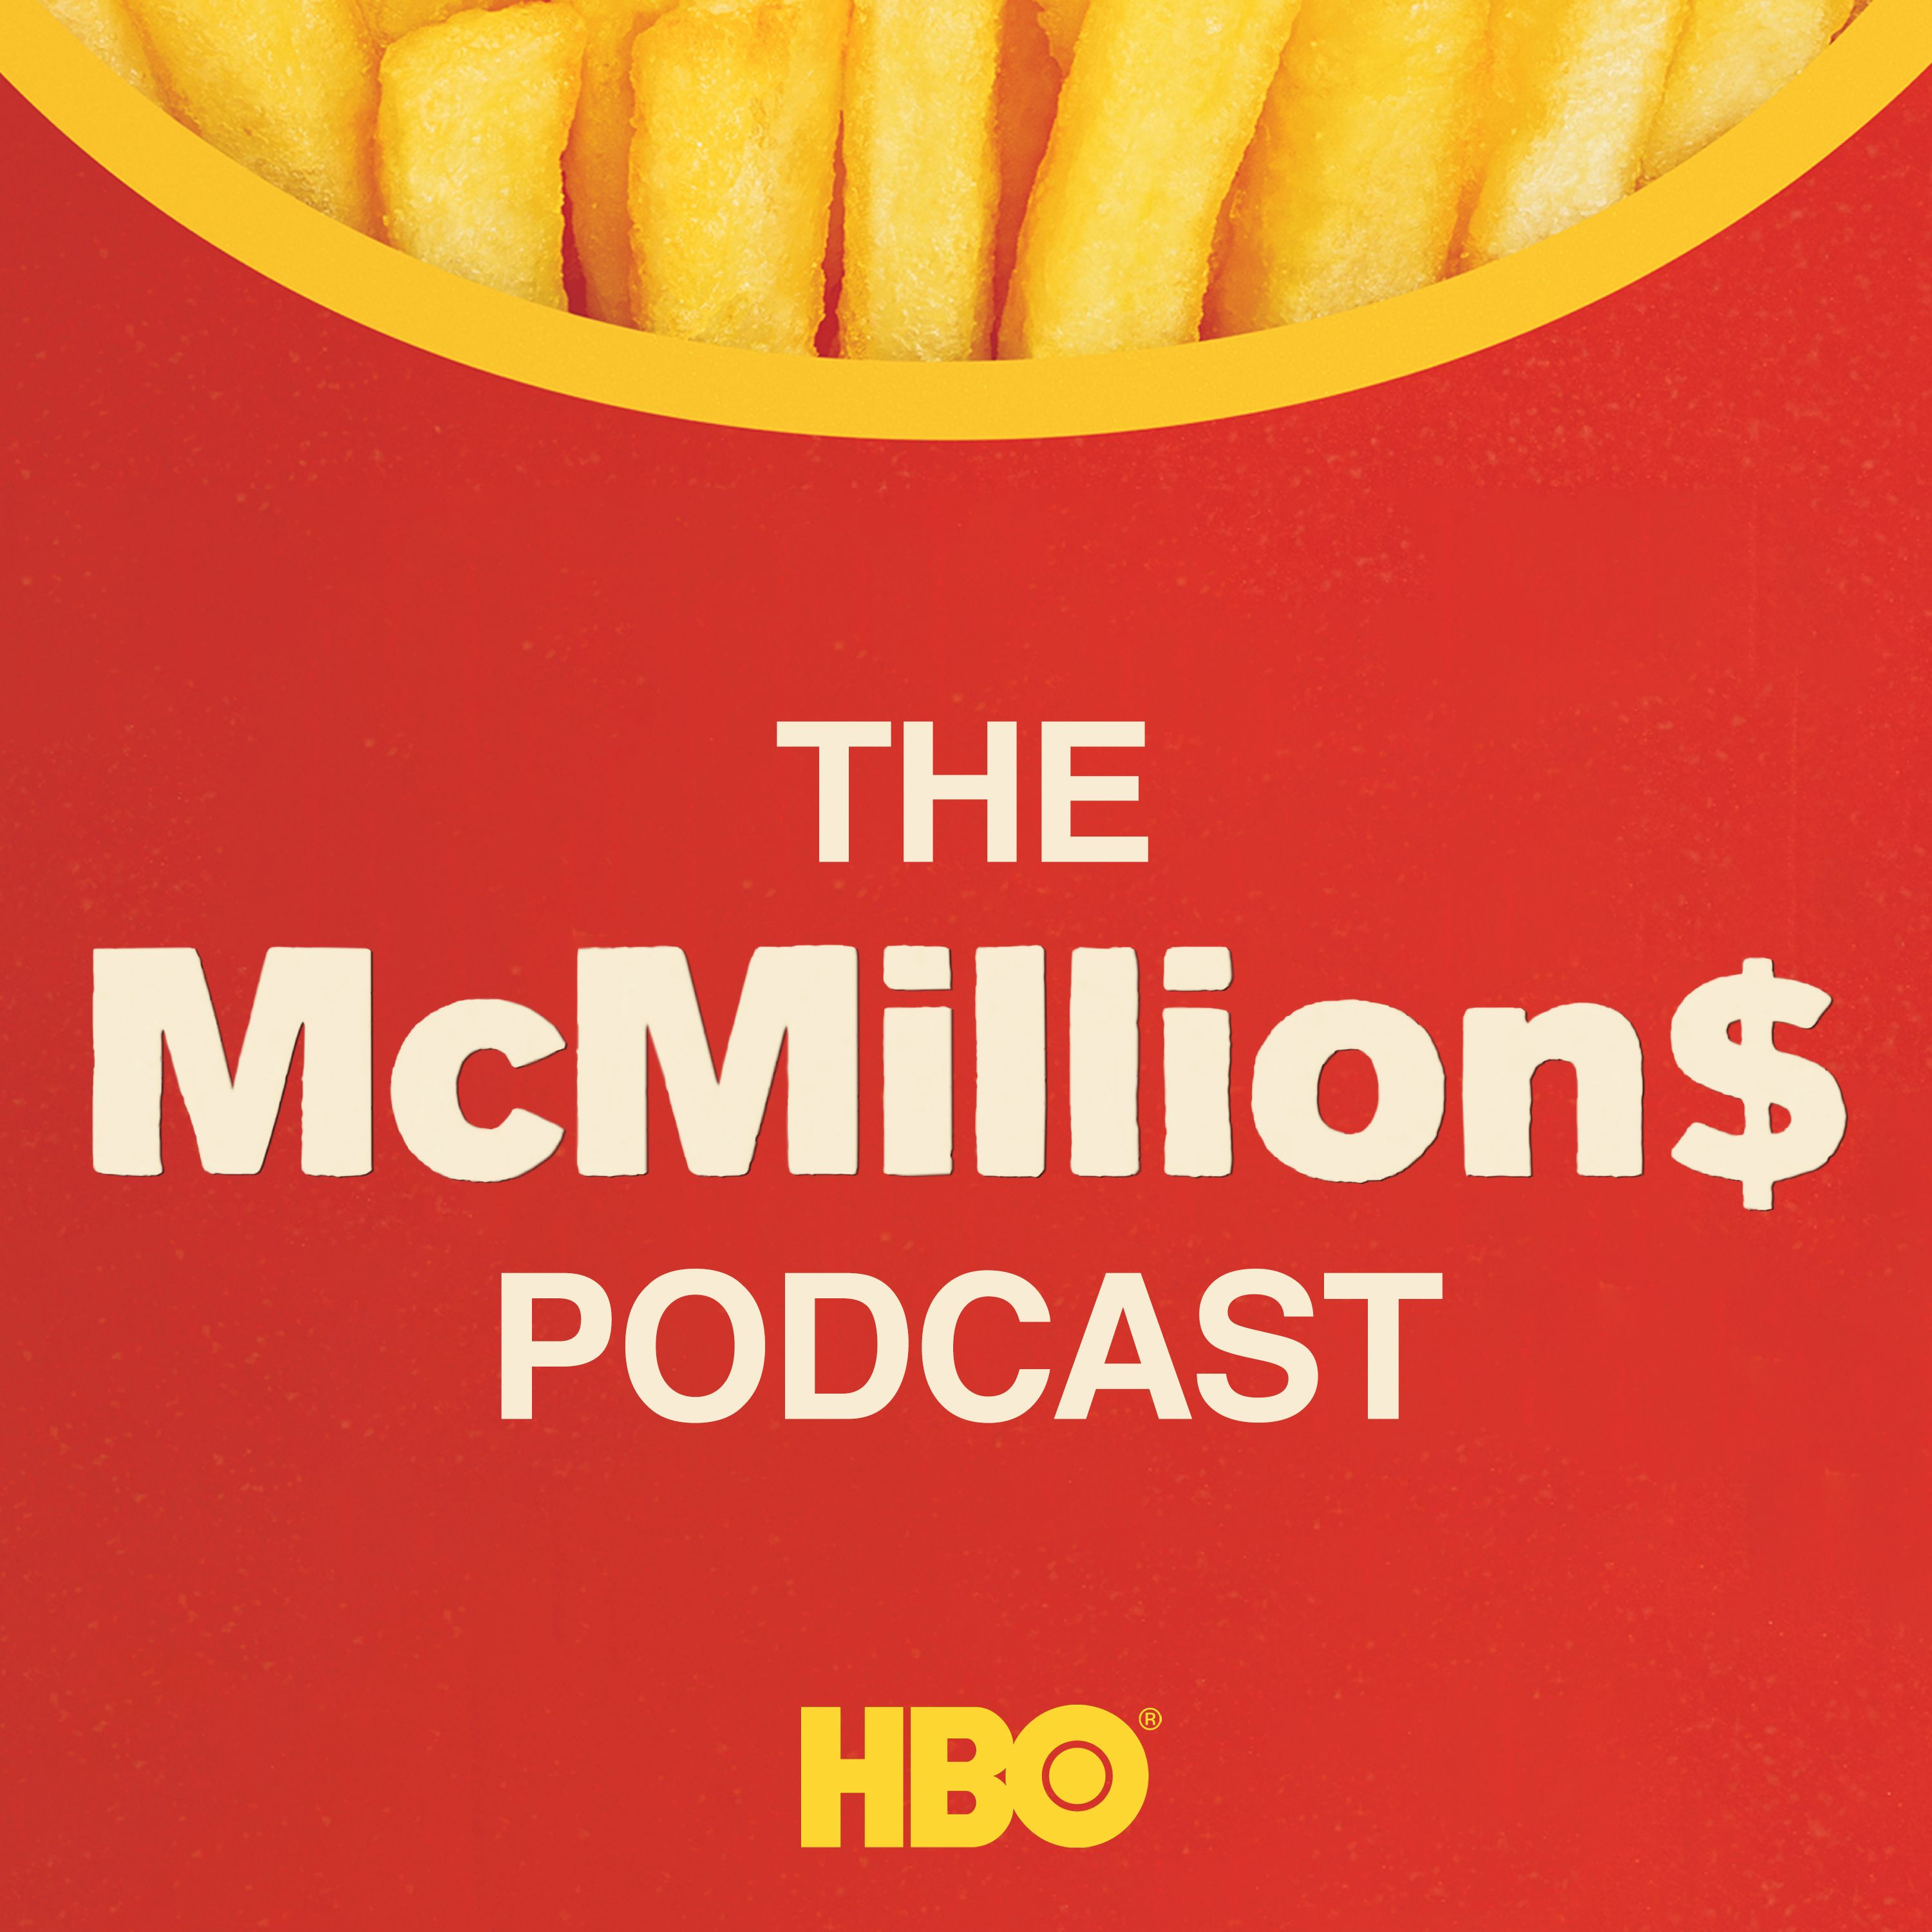 Coming Soon: The McMillion$ Podcast